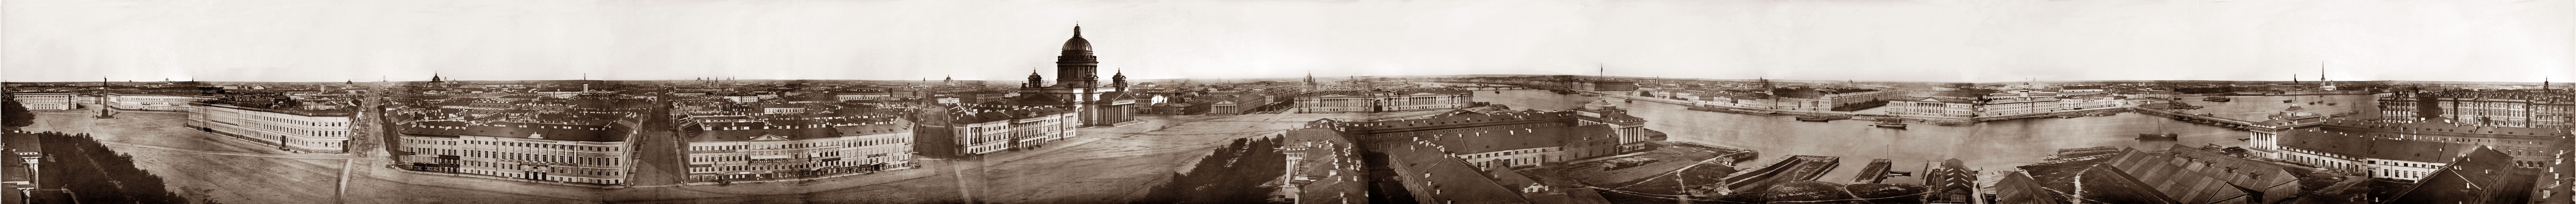 One Of The Oldest Photos Of St. Petersburg